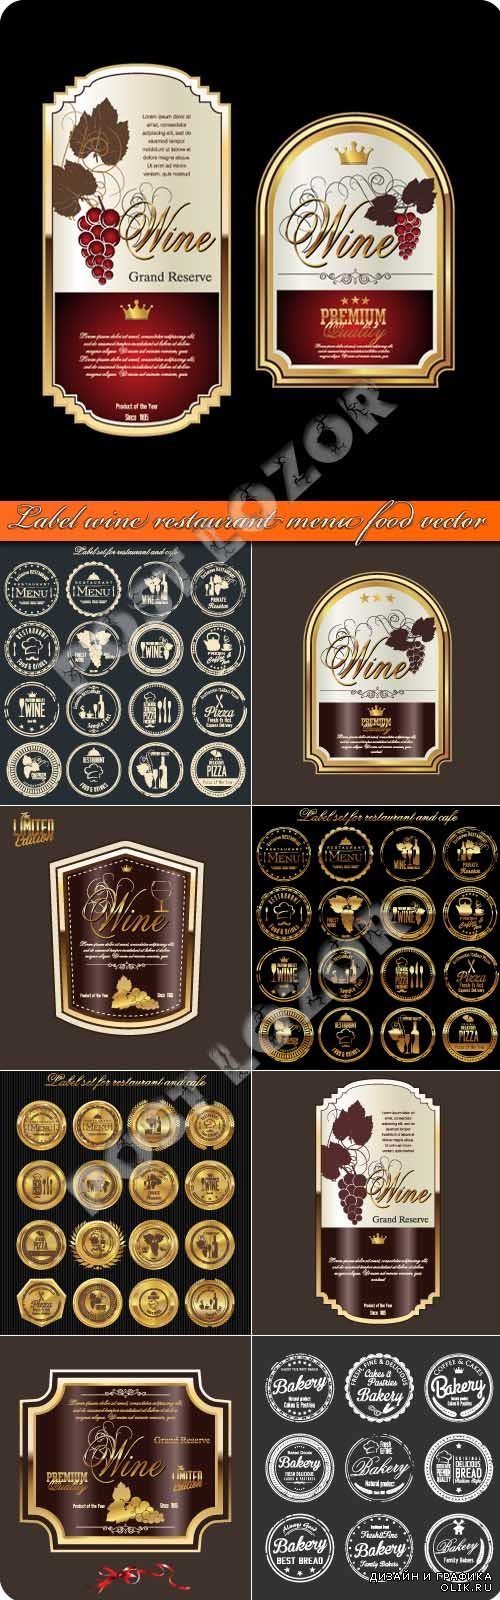 Label wine restaurant menu food vector